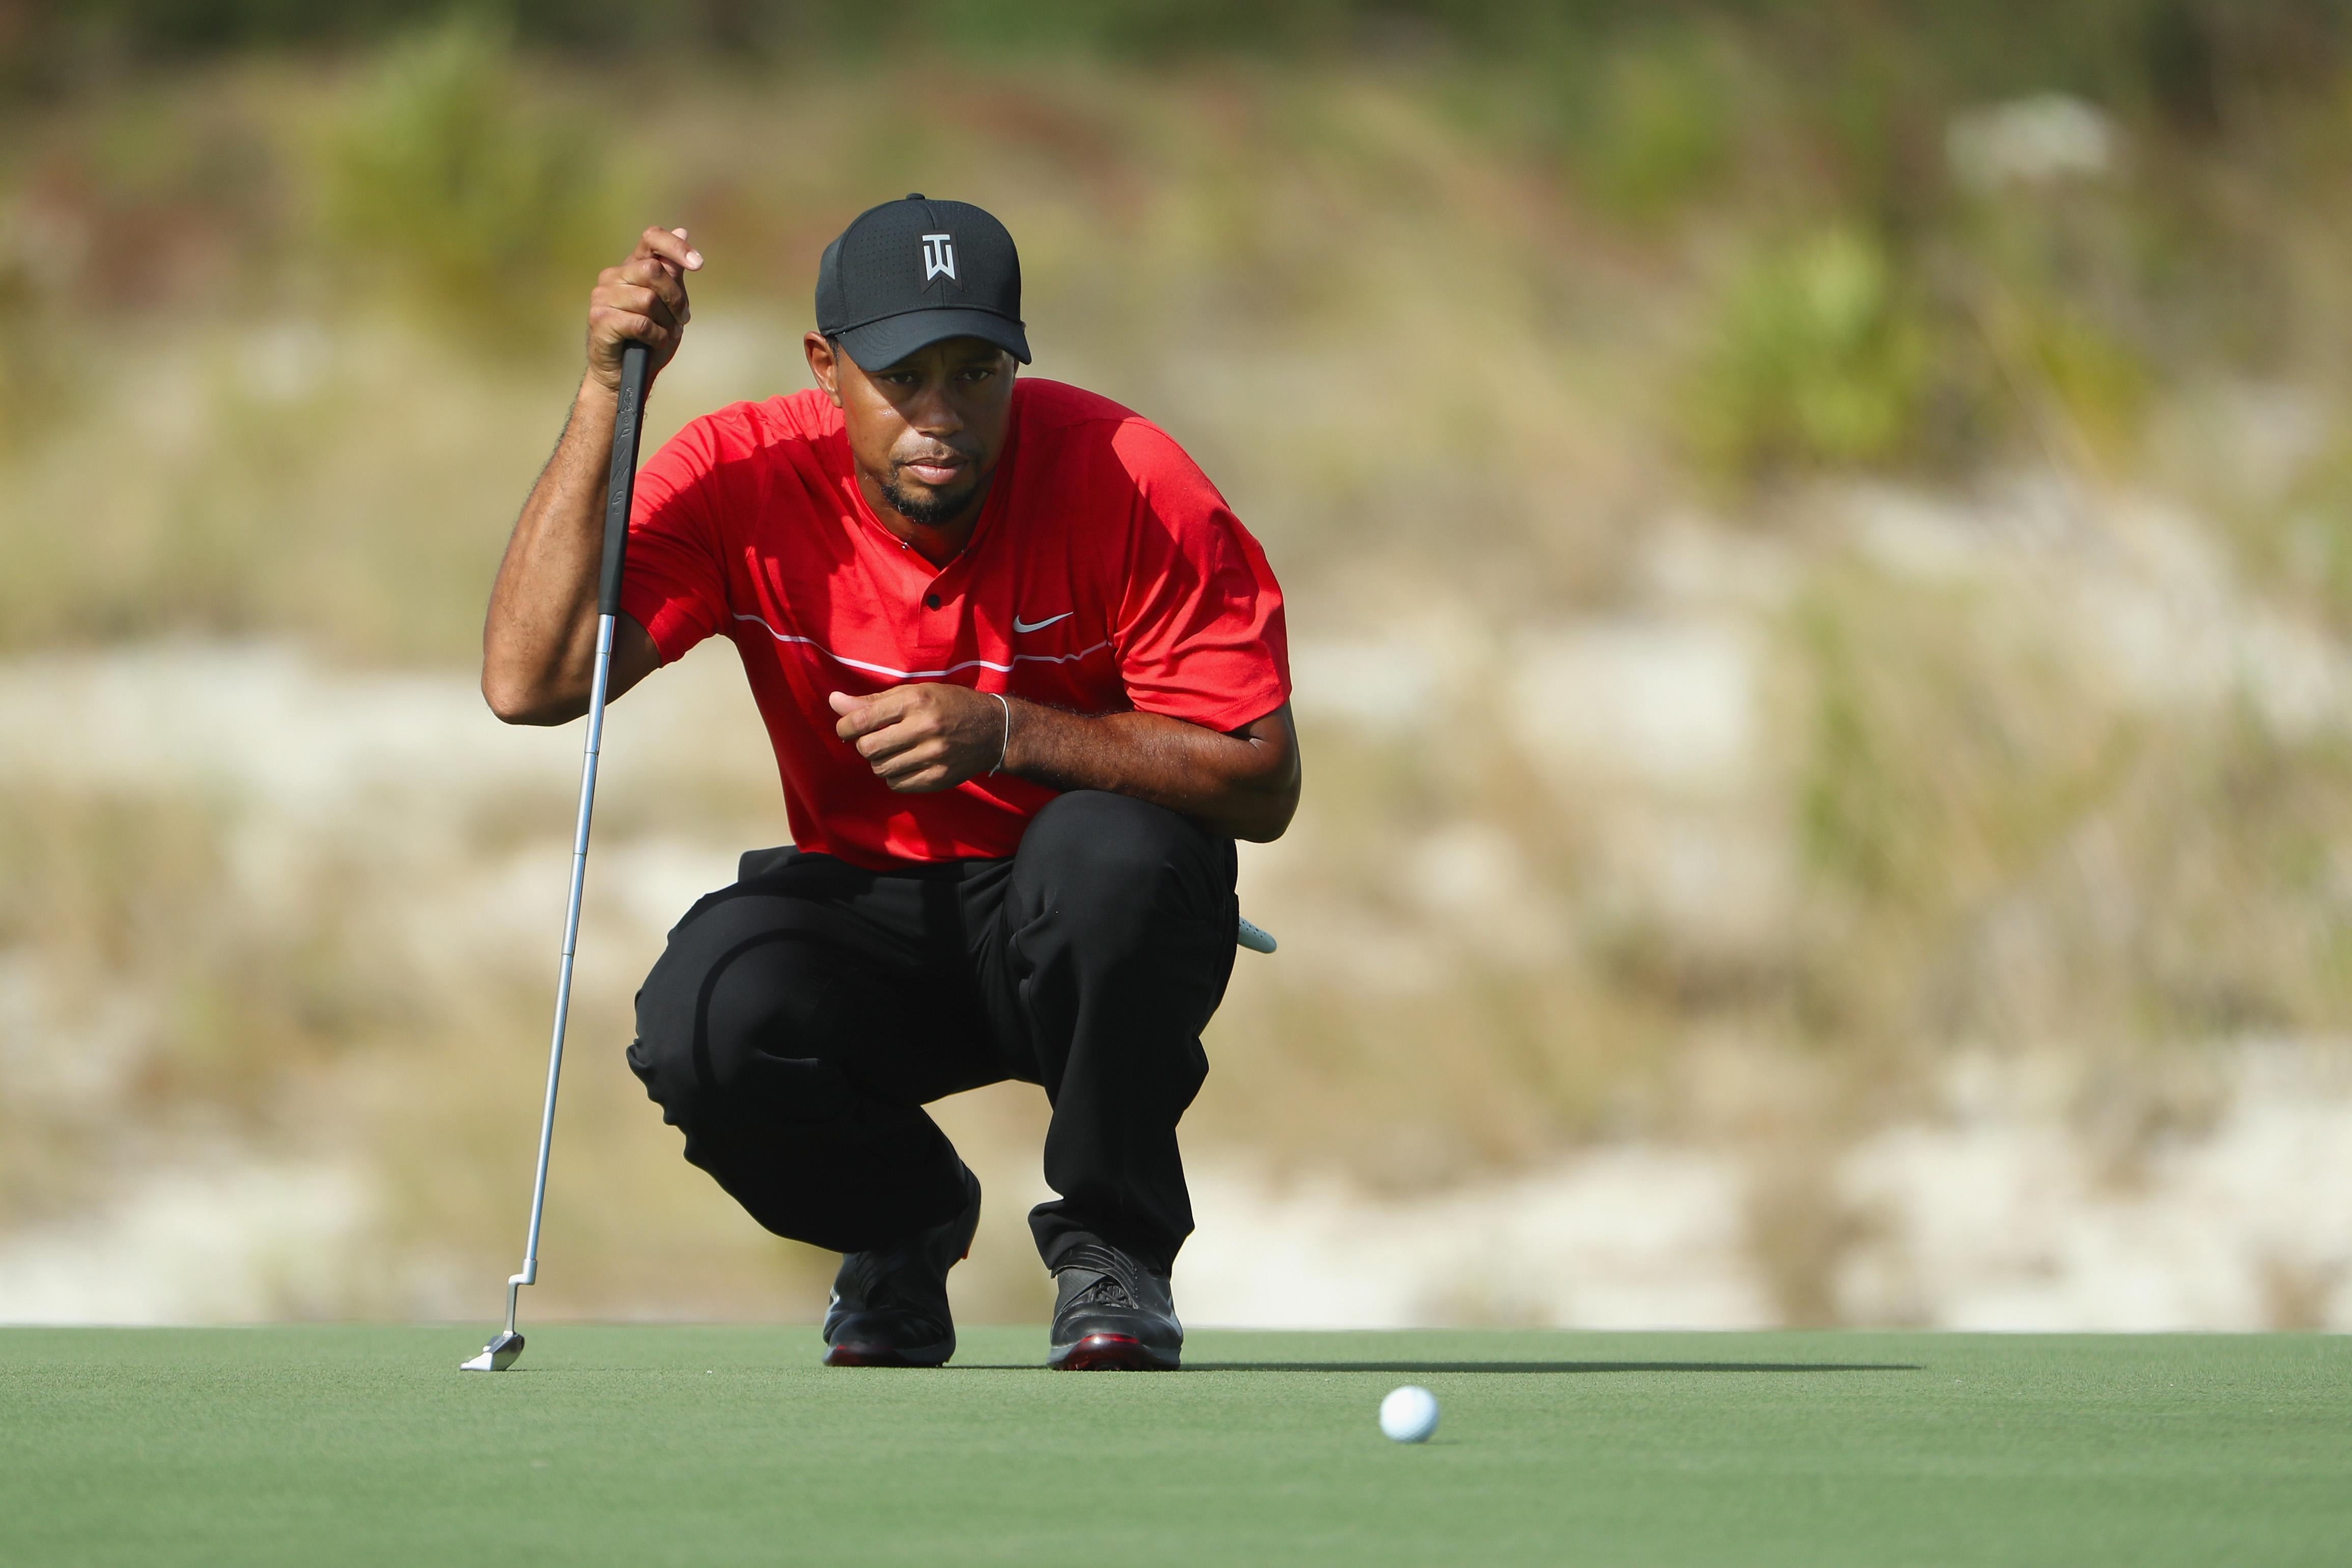 Woods hopes to shake off rust with busy calendar